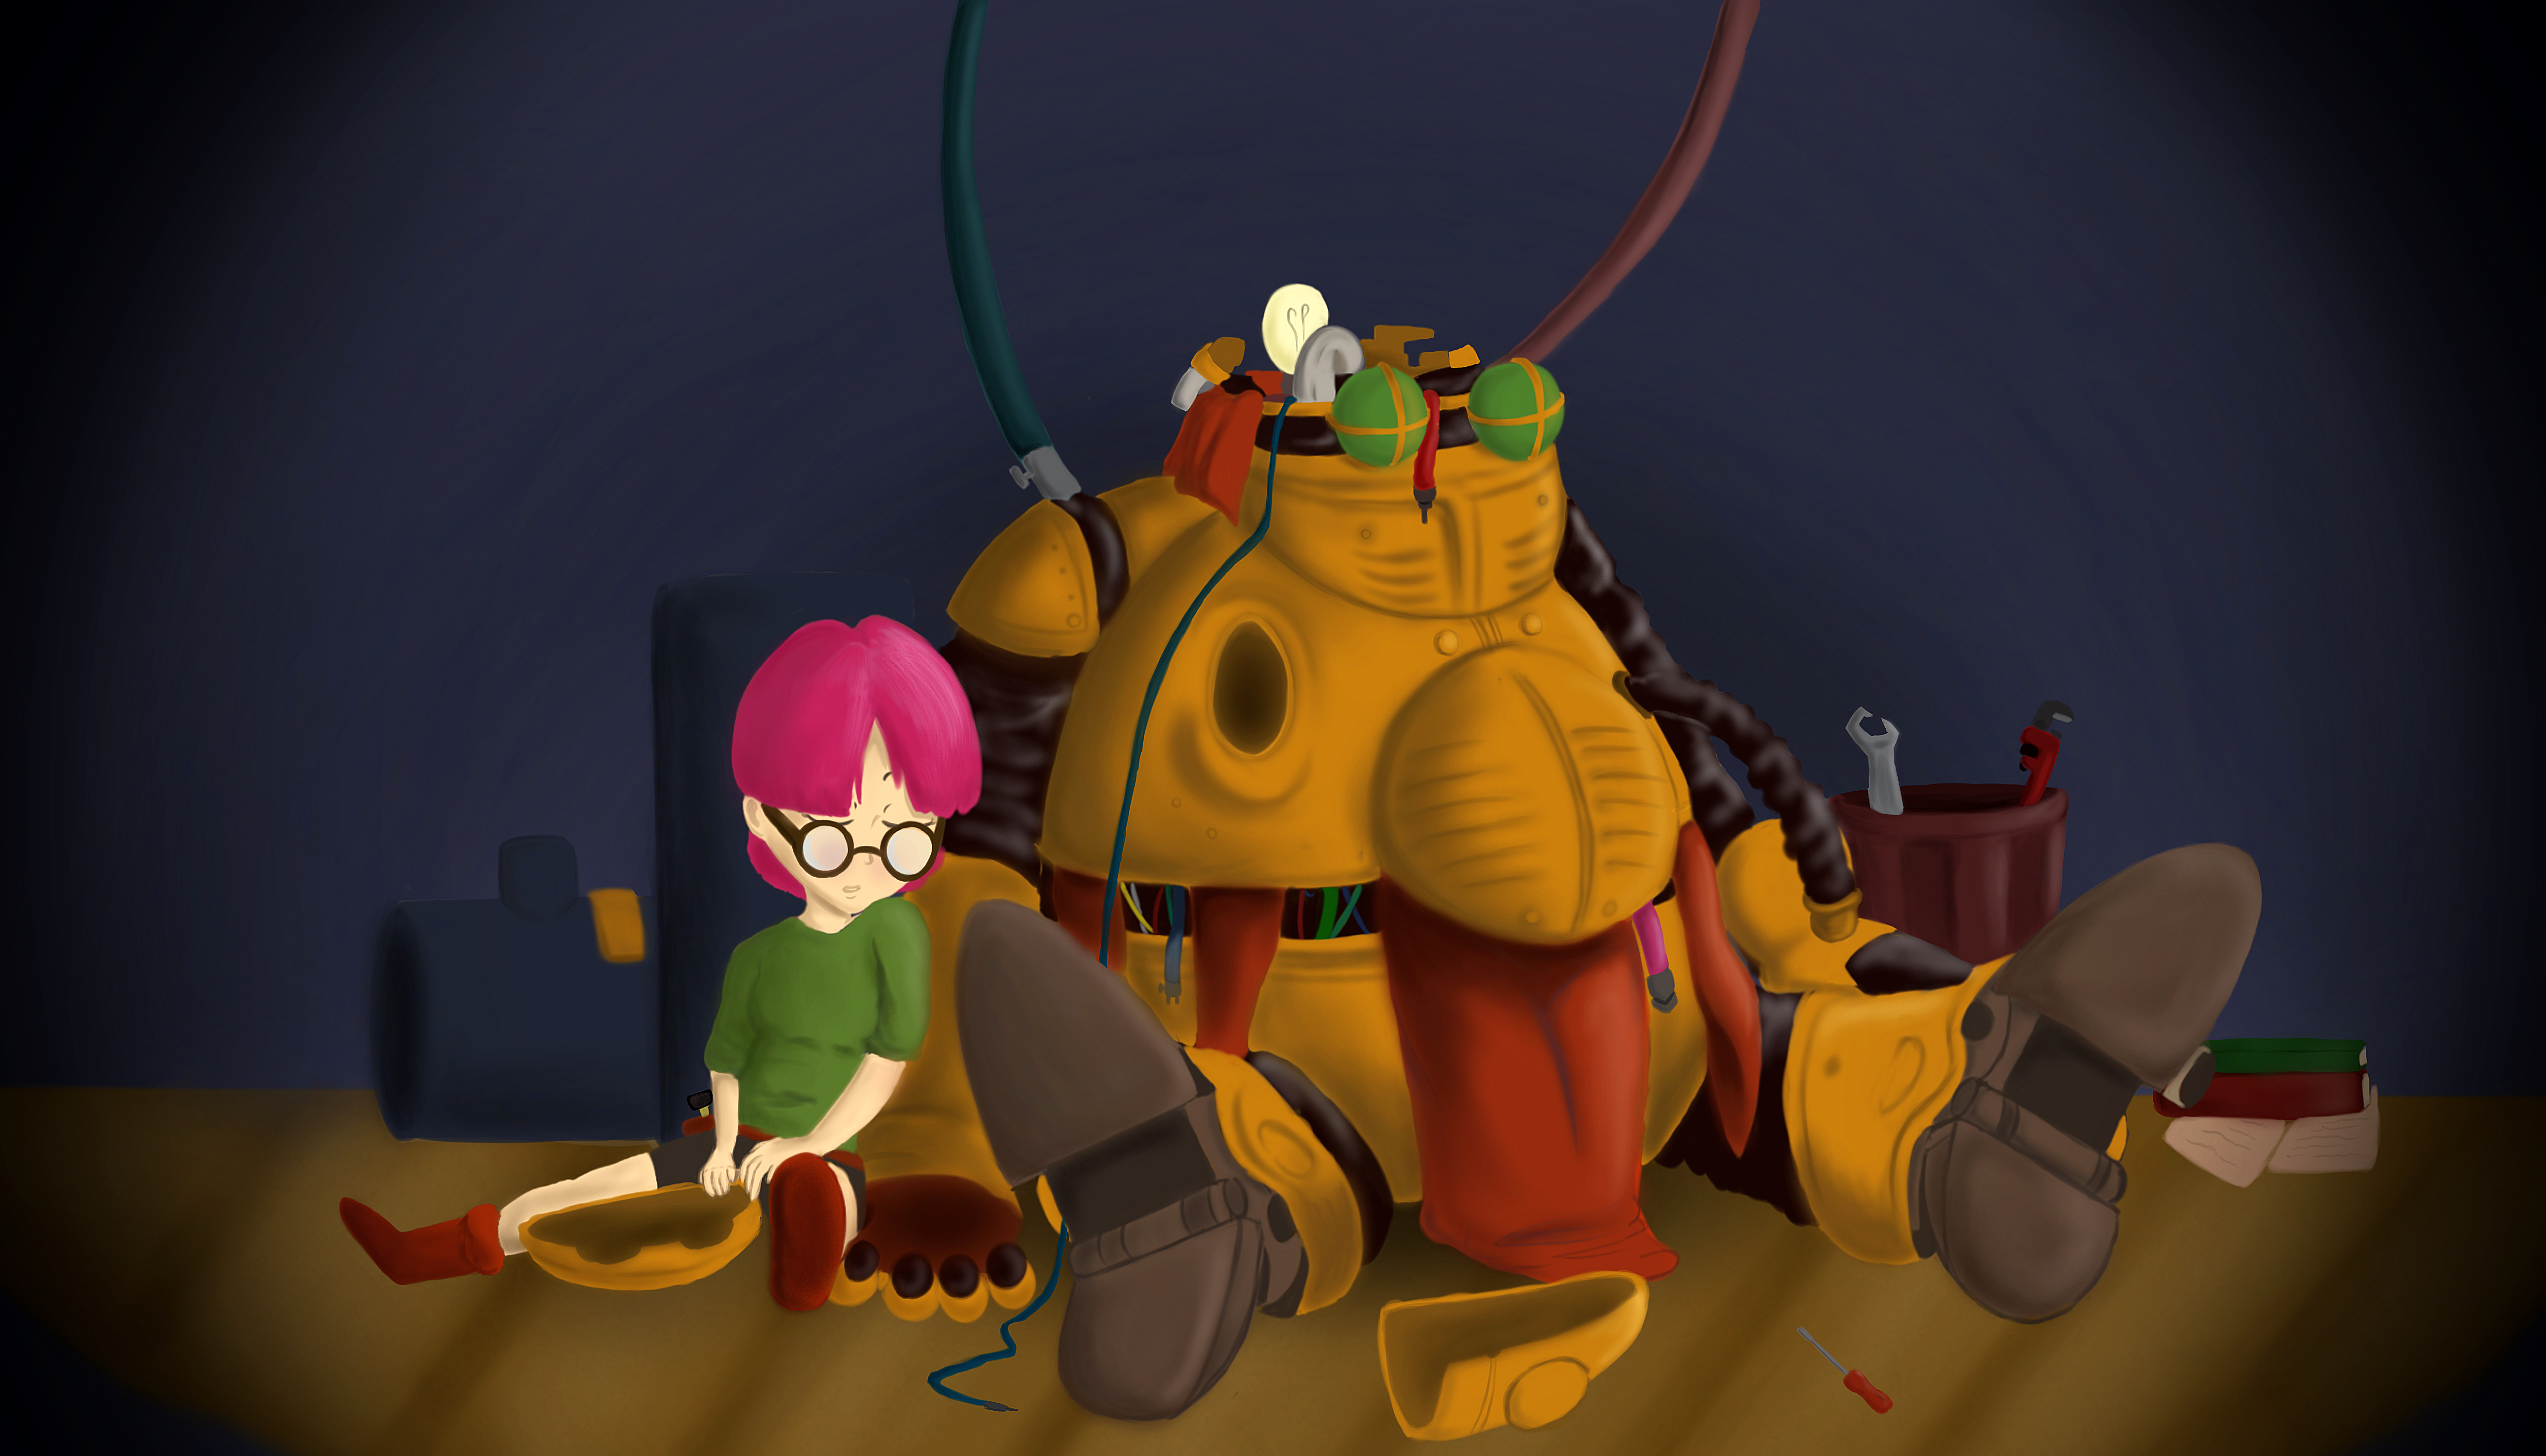 Lucca and Robo